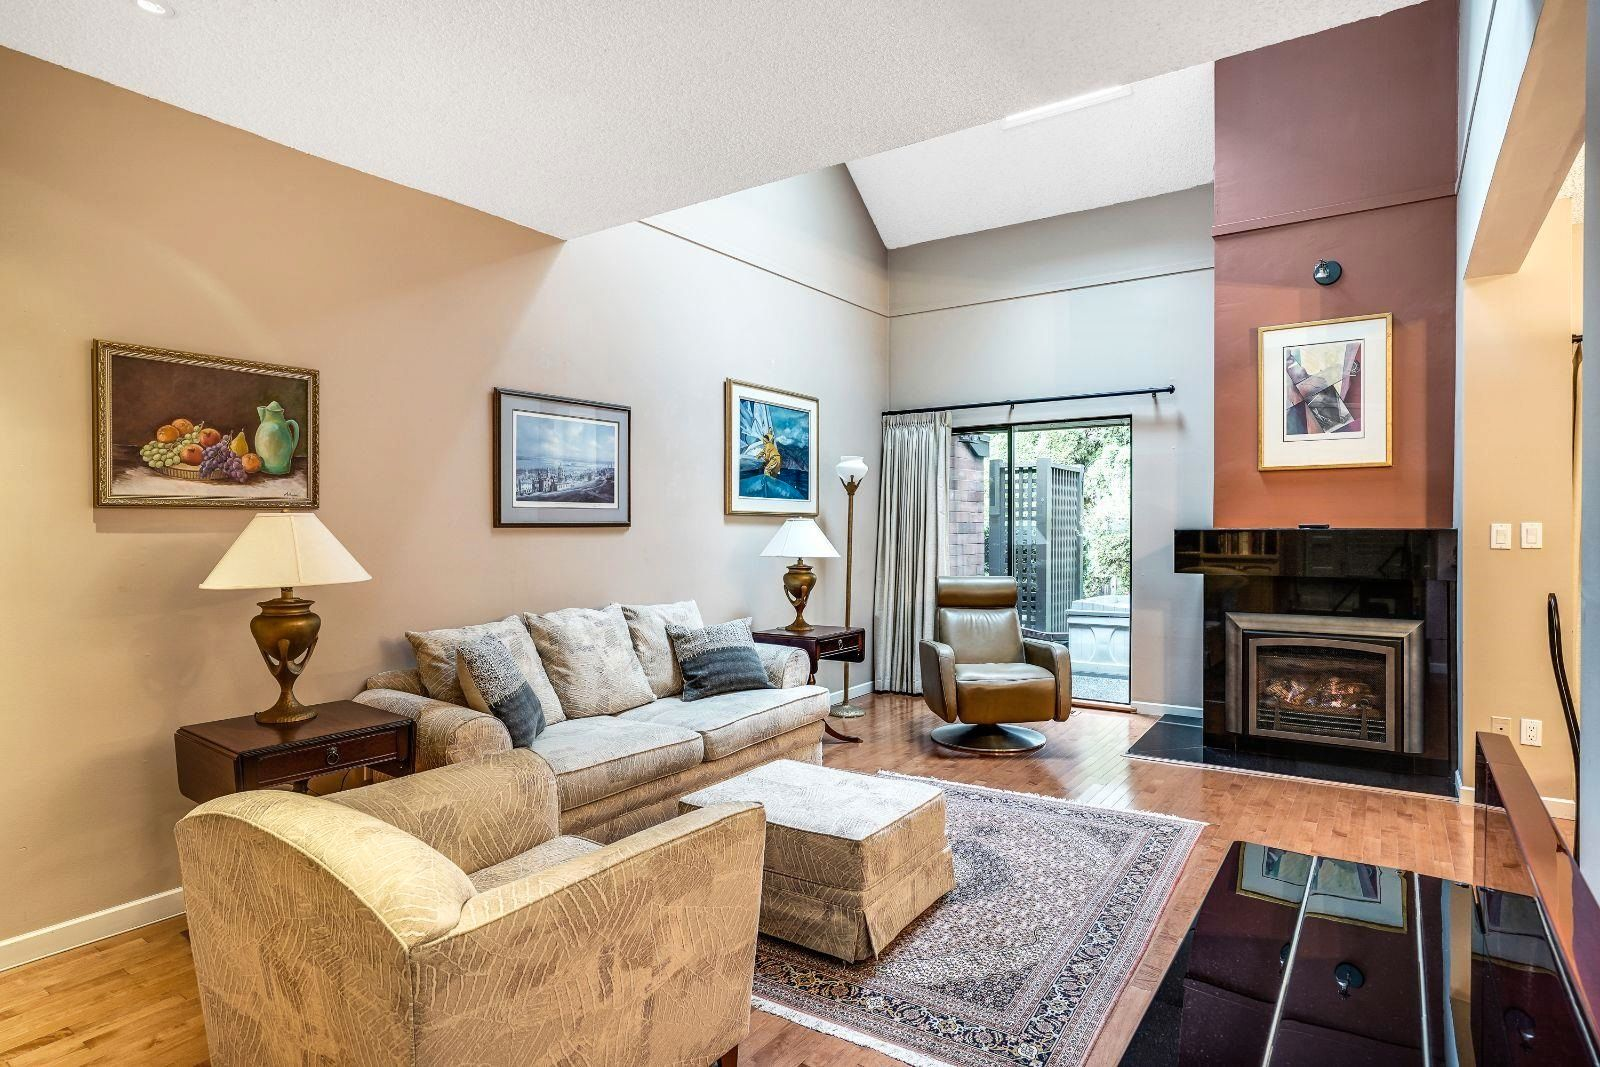 """Main Photo: 6522 PINEHURST Drive in Vancouver: South Cambie Townhouse for sale in """"Langara Estates"""" (Vancouver West)  : MLS®# R2619741"""